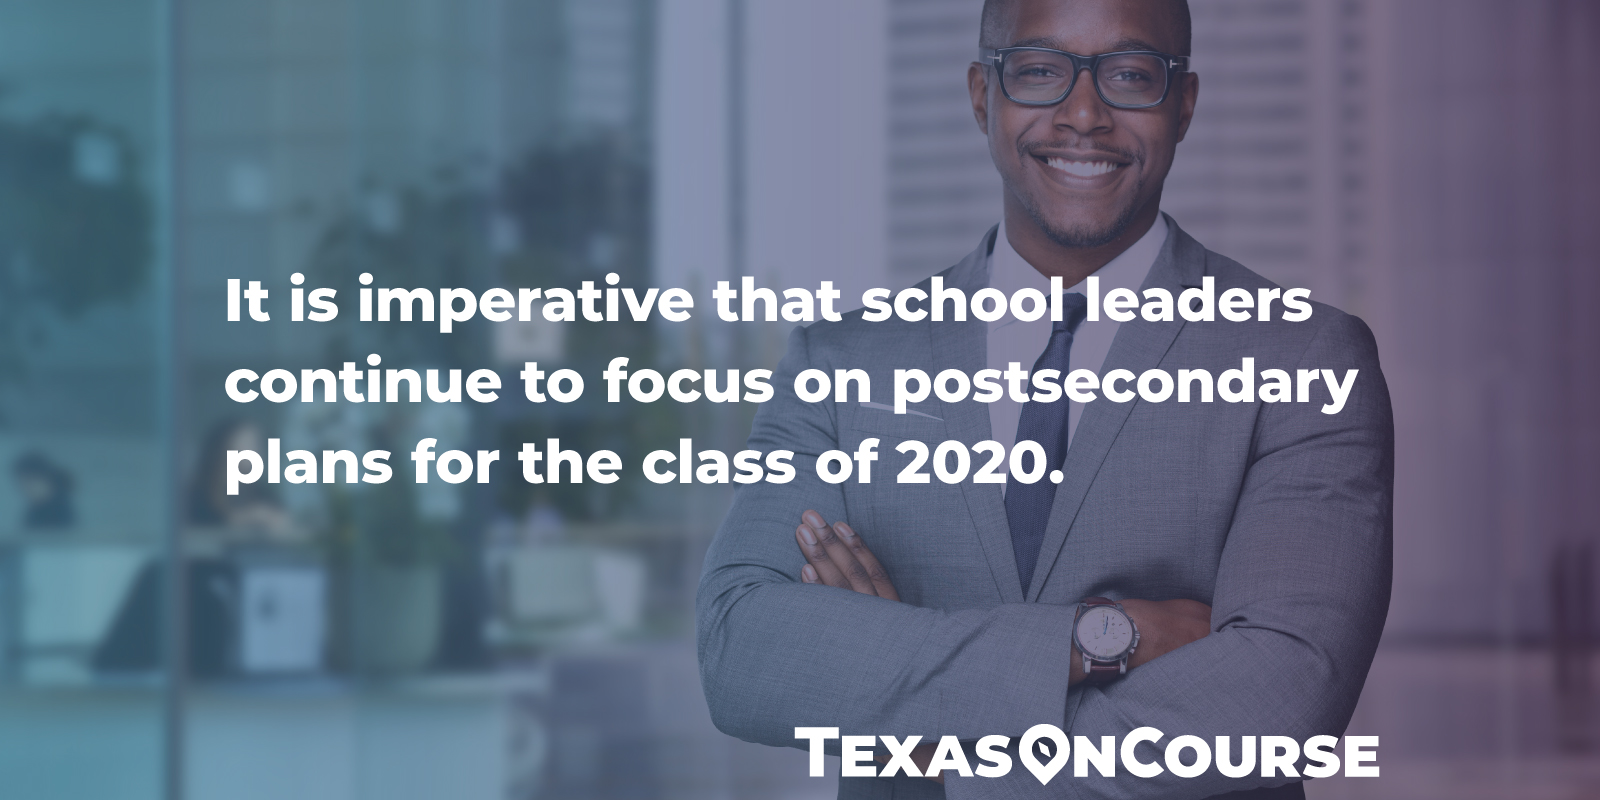 It's imperative that school leaders continue to focus on postsecondary preparations for the class of 2020.